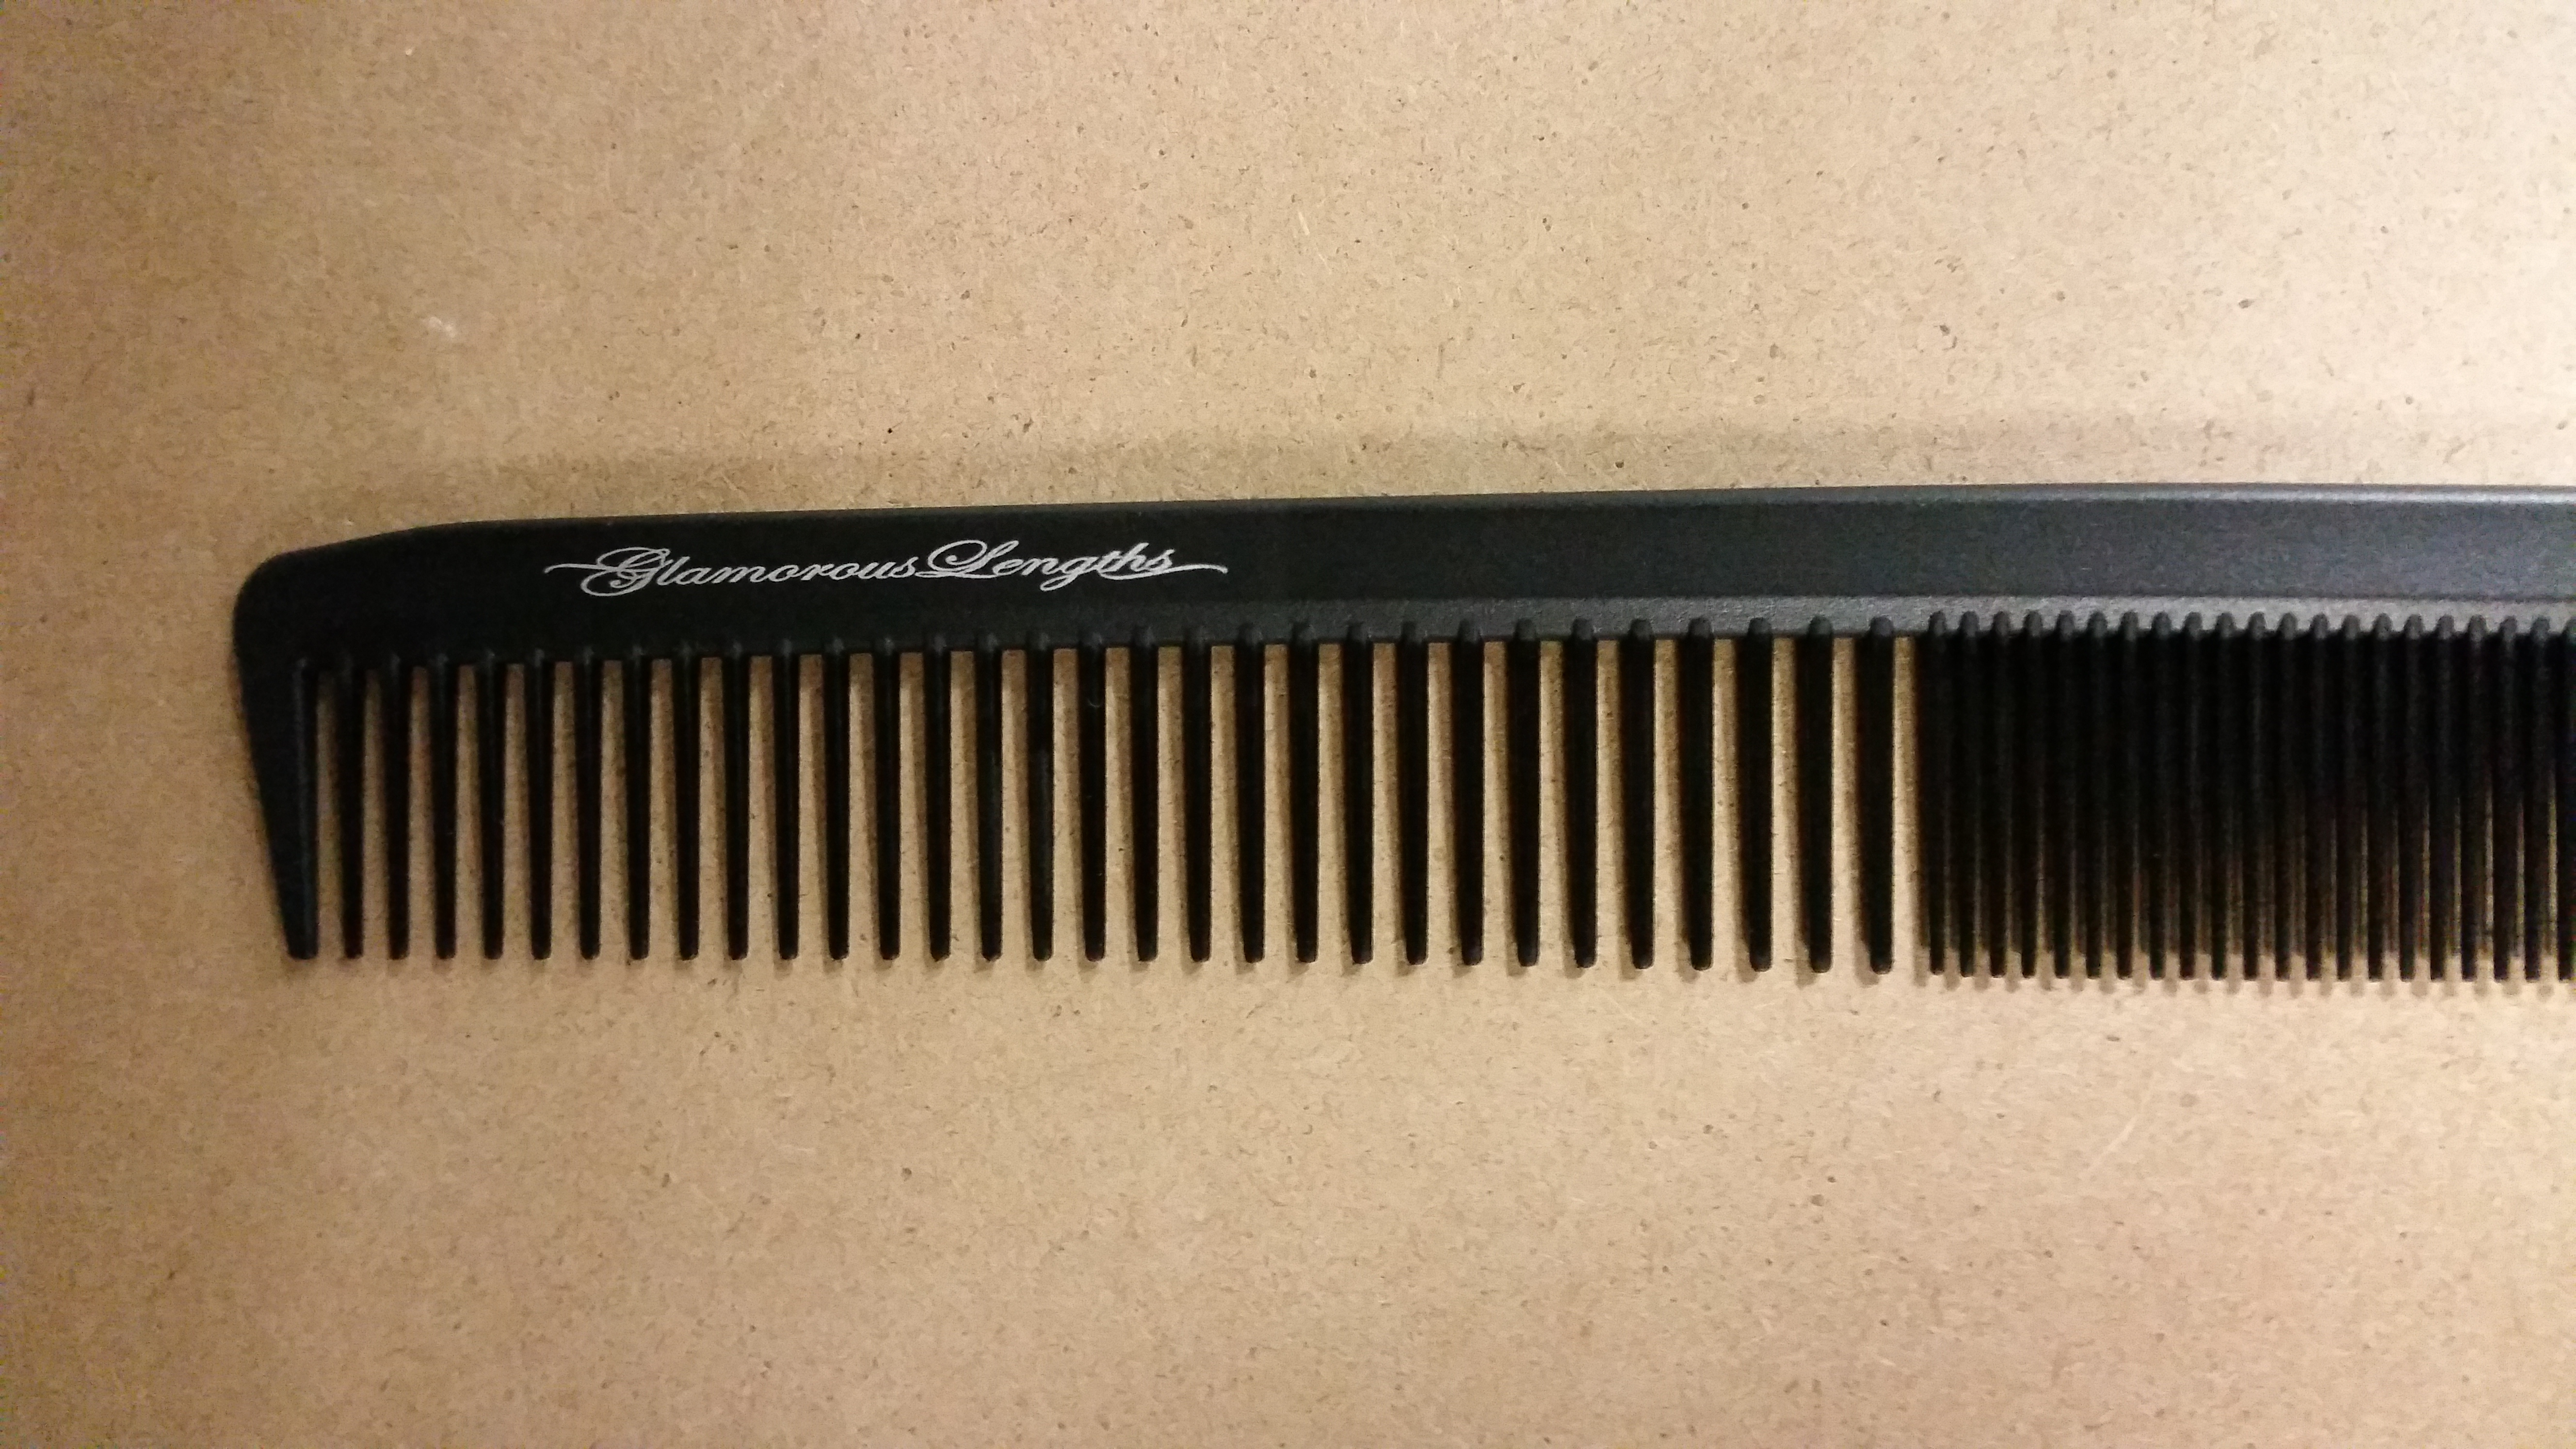 GLAMOROUS LENGTHS CUTTING COMB